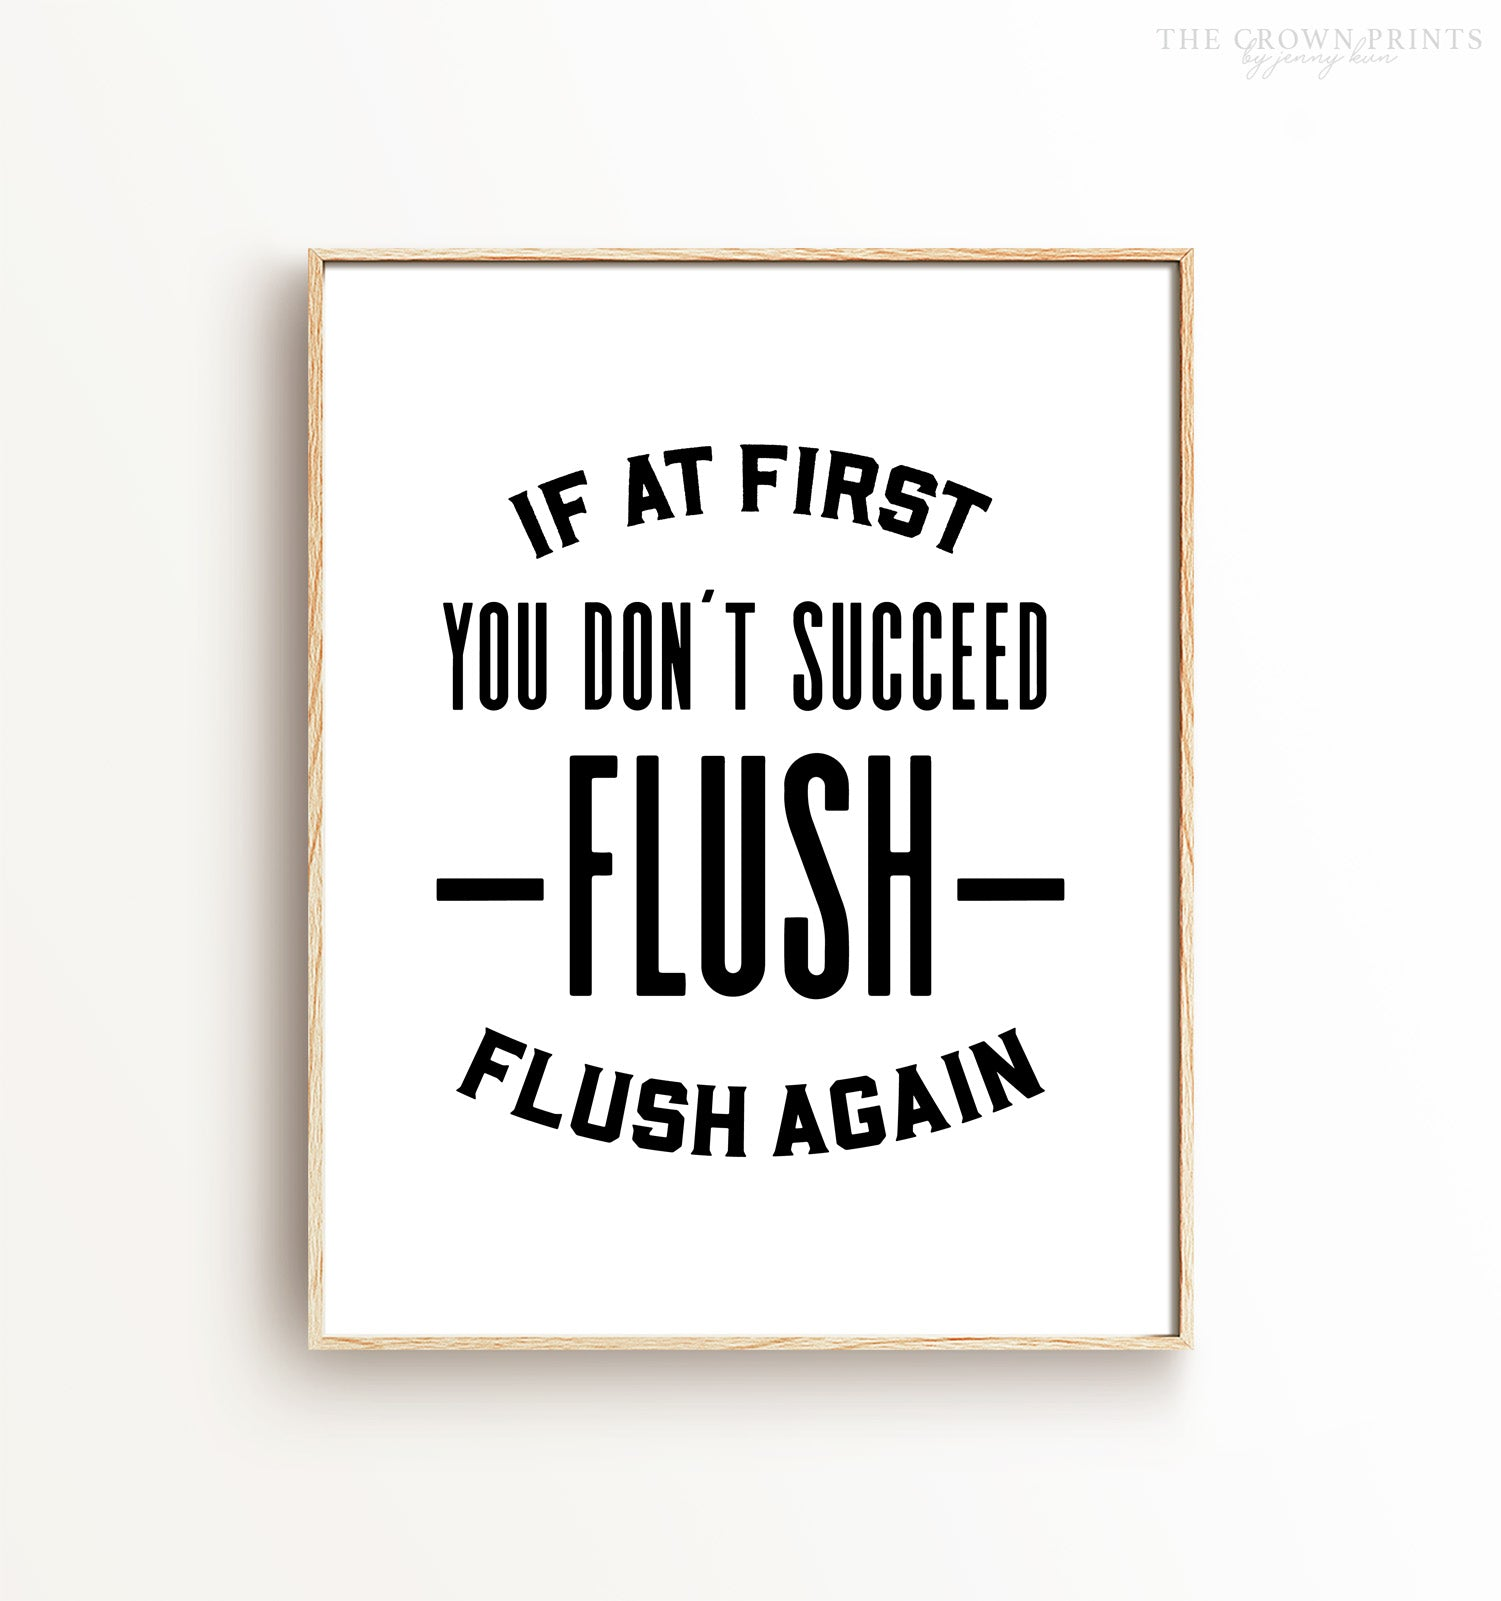 If at first you don't succeed, flush again Printable Art